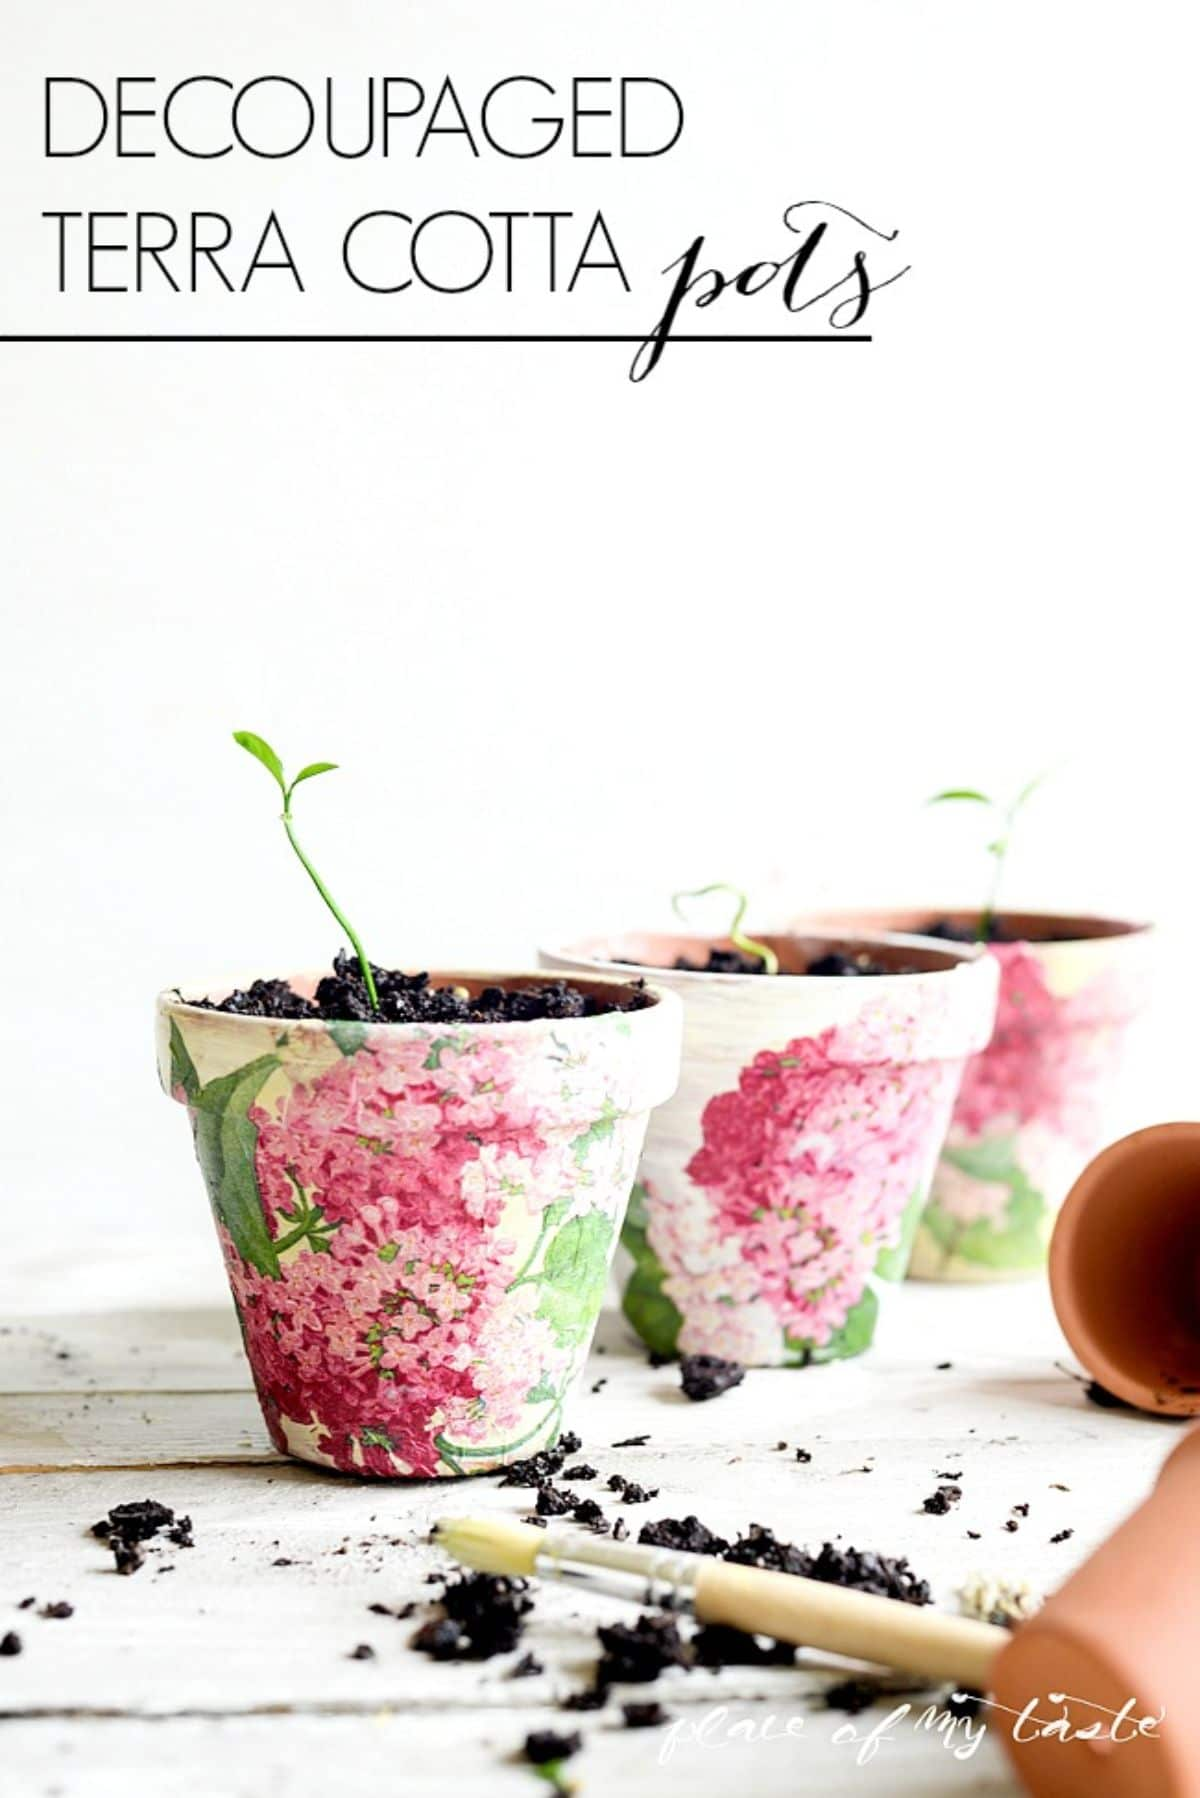 3 plant pots filled with soil have flowers decoupaged around the outside. In the foreground is a trowel with soil on it